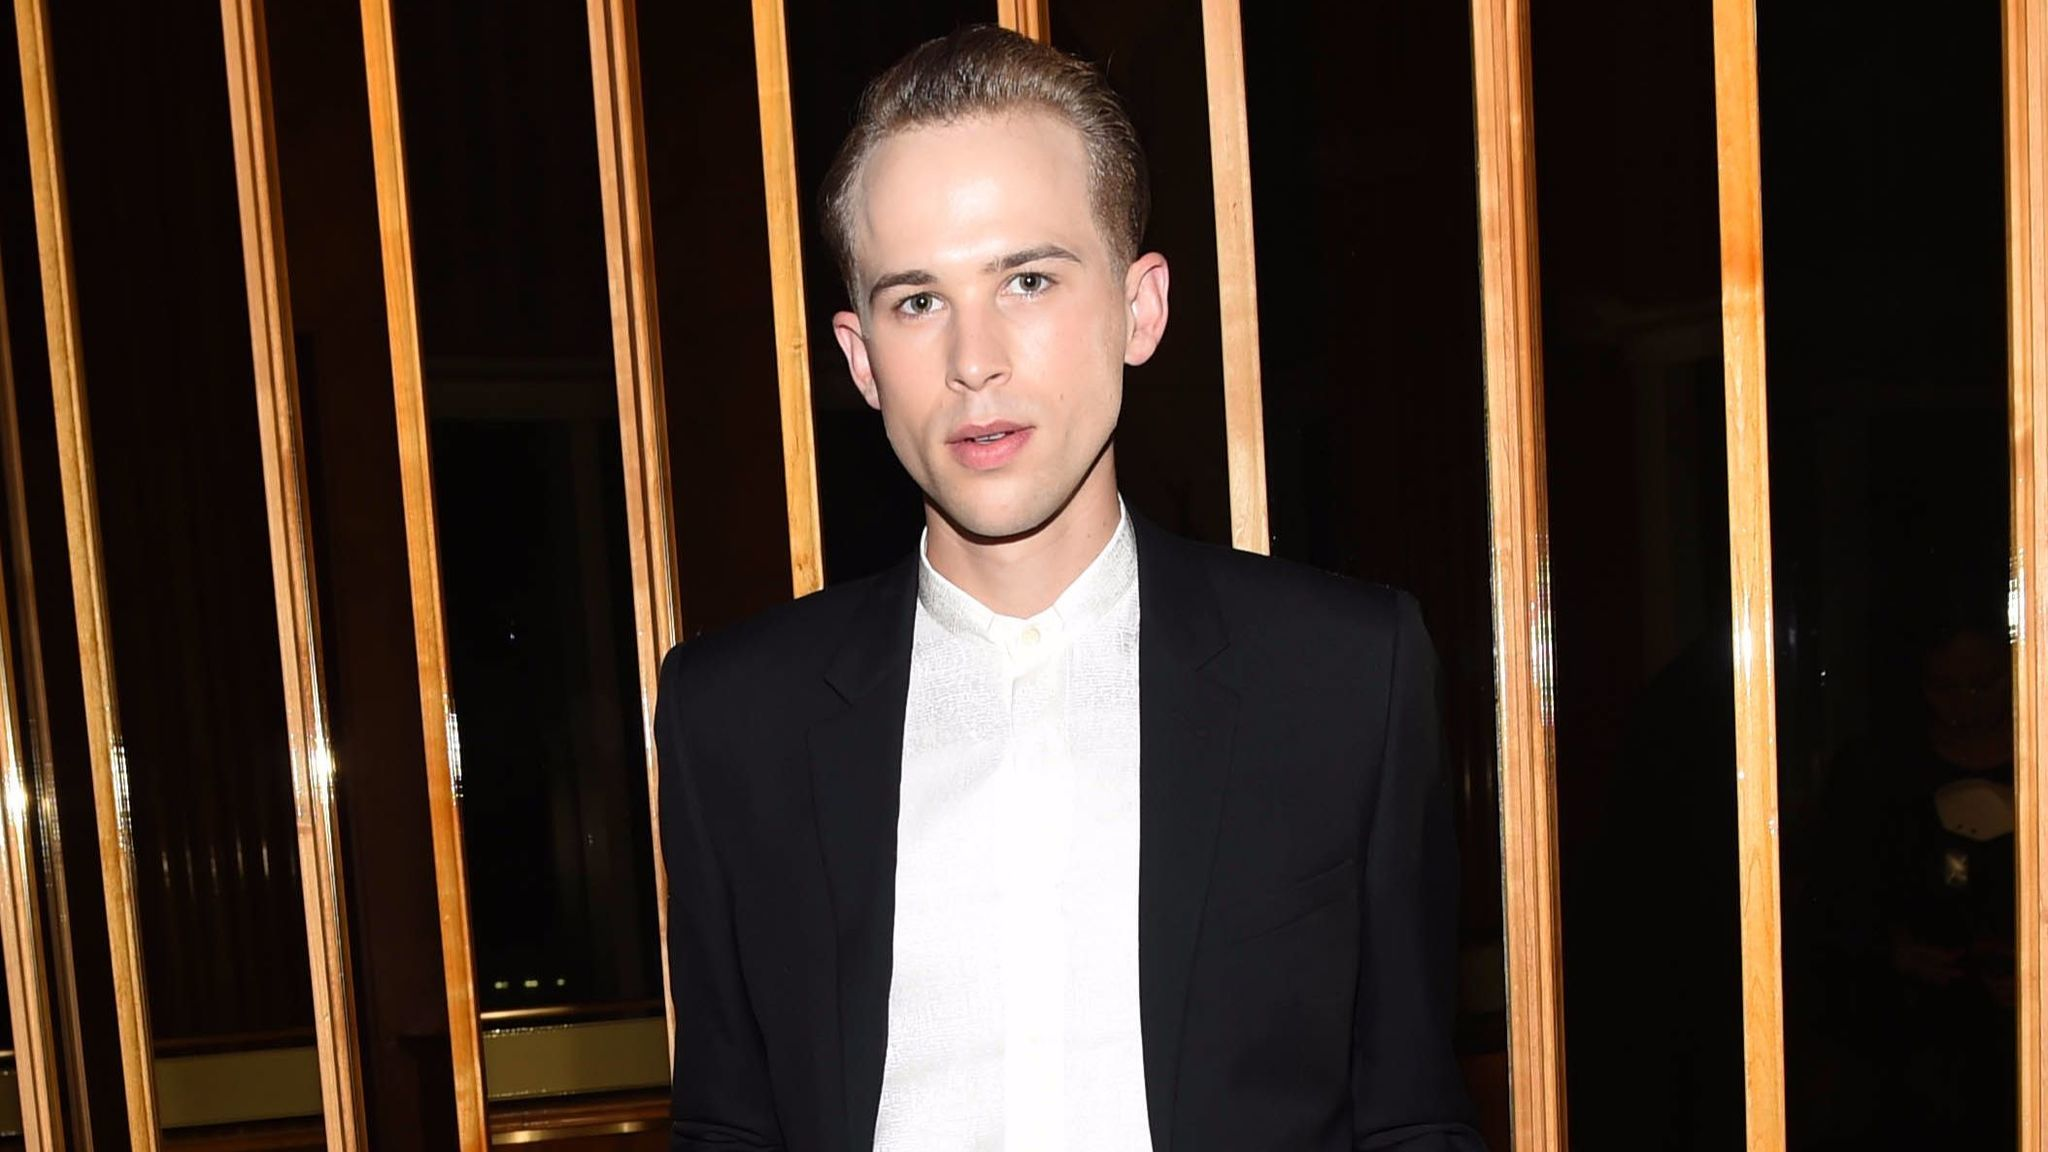 Tommy Dorfman attends the CFDA Fashion Awards after-party at the Boom Boom Room in New York on June 5, 2017.